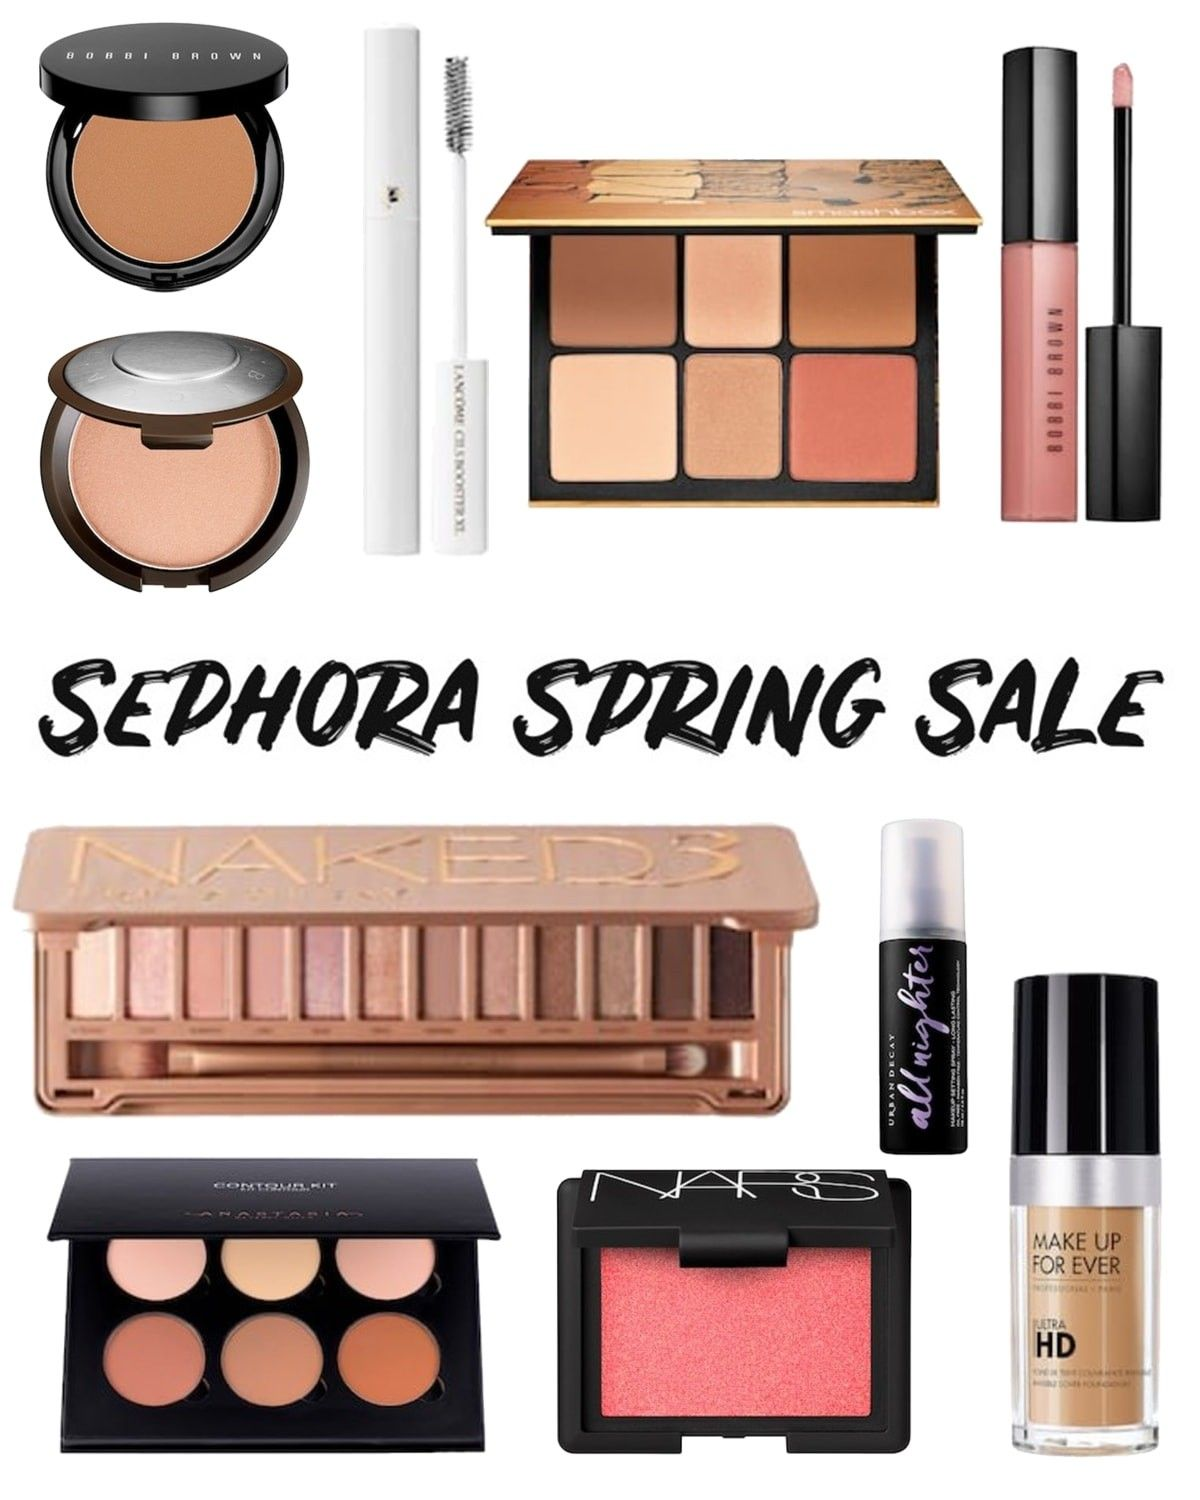 #sephorasale #beautyblogger